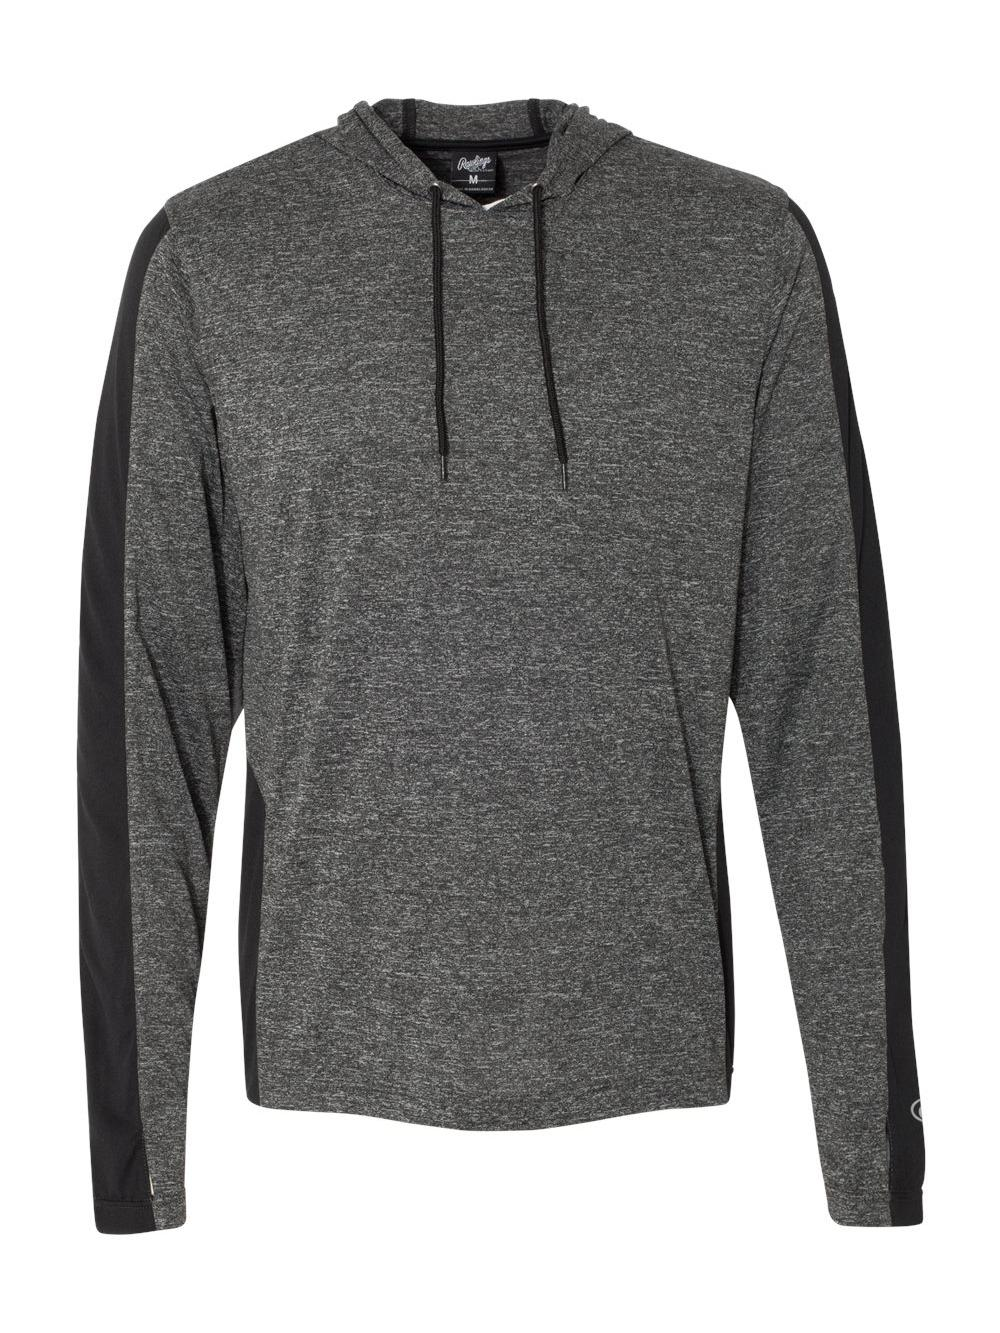 Rawlings-Performance-Cationic-Hooded-Pullover-T-Shirt-8199 thumbnail 3